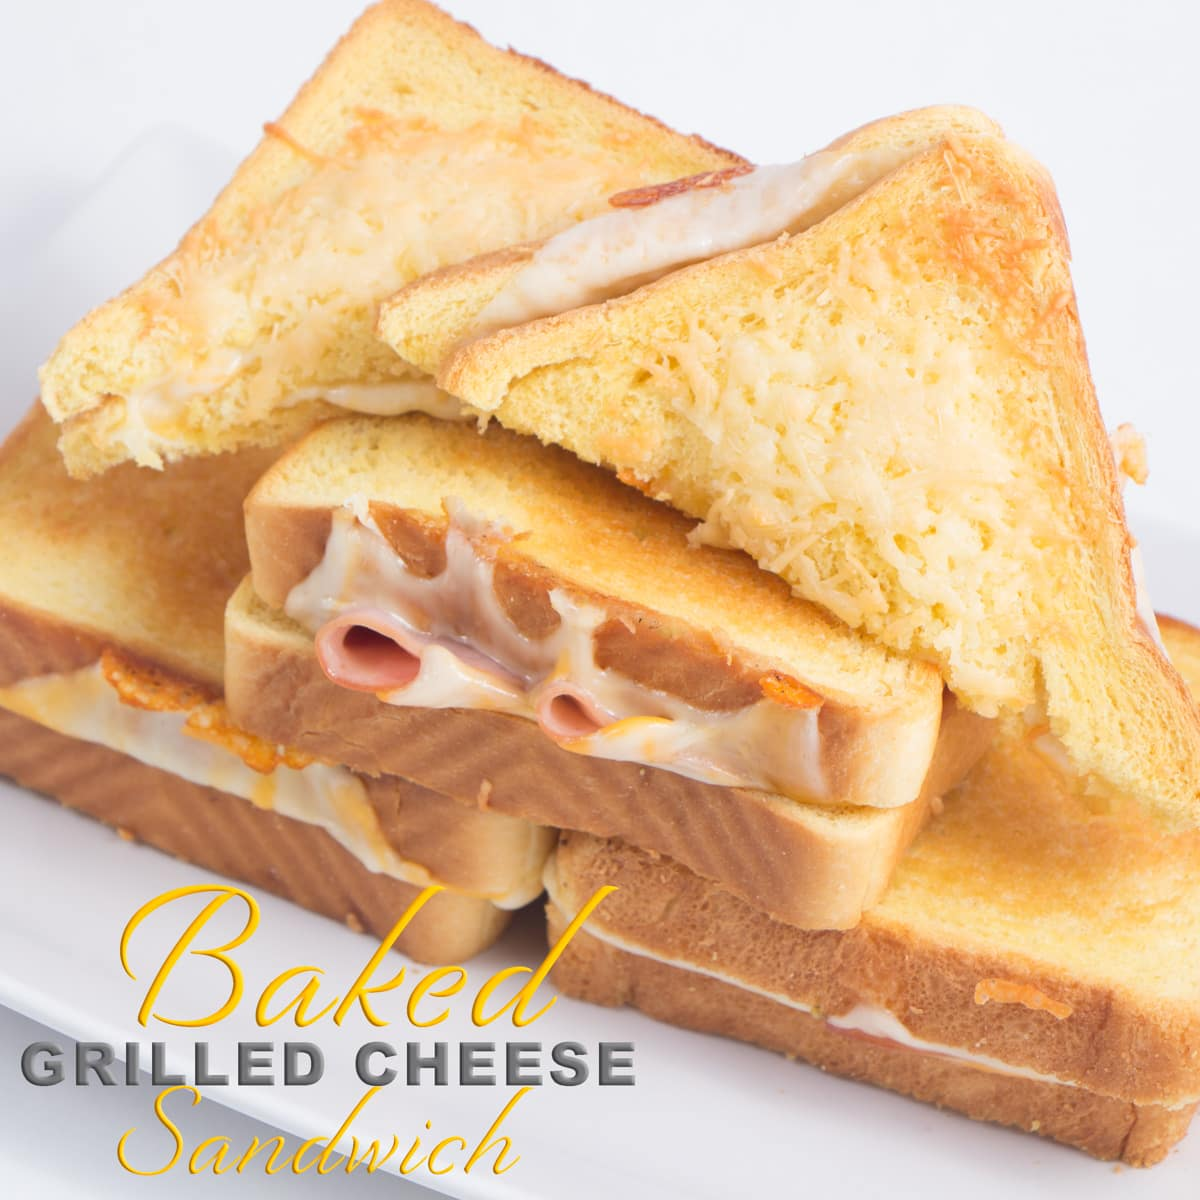 Baked Grilled Cheese Sandwich